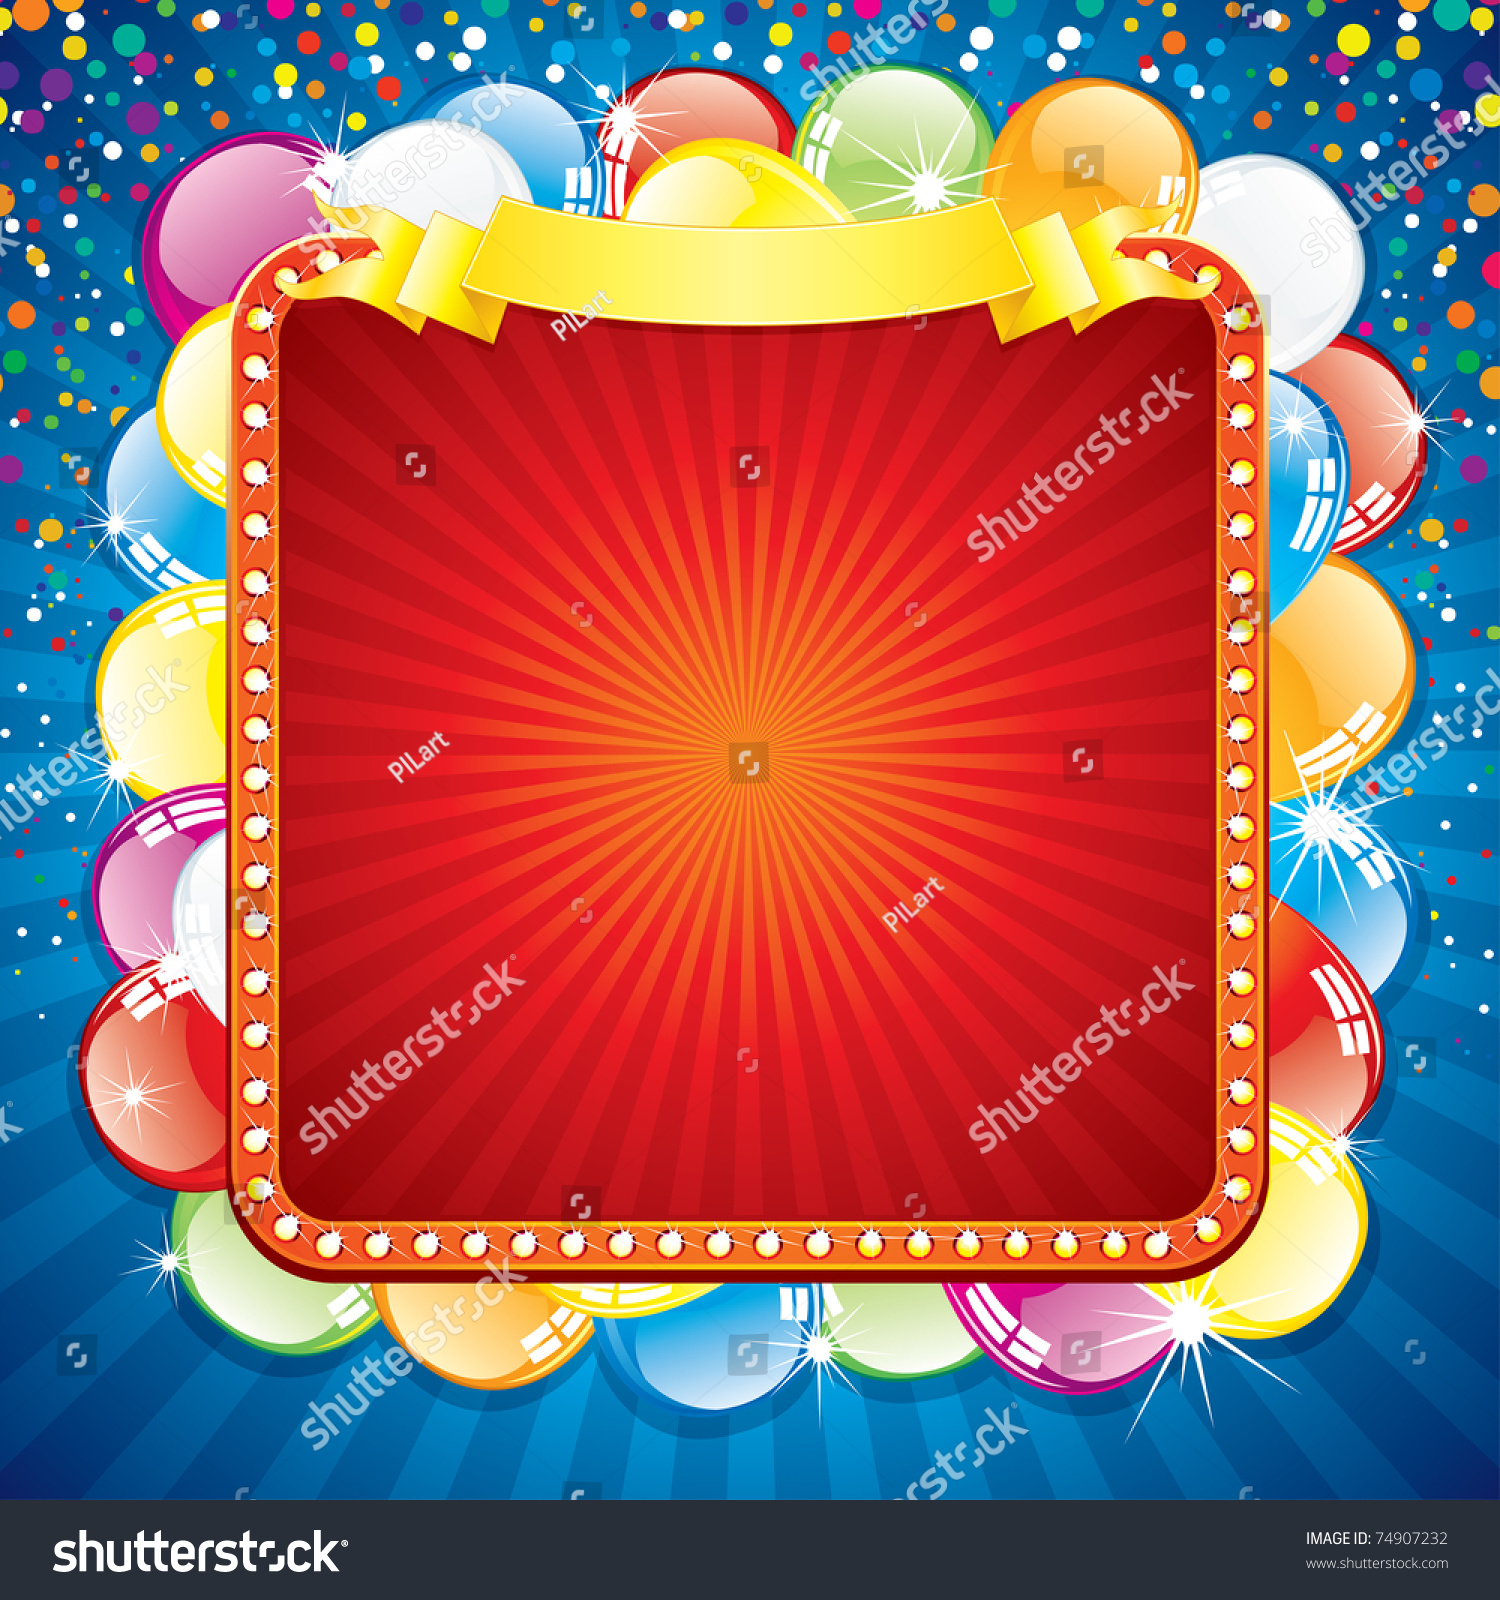 Happy Birthday Card Template Blank Colorful Vector 74907232 – Birthday Greetings Template